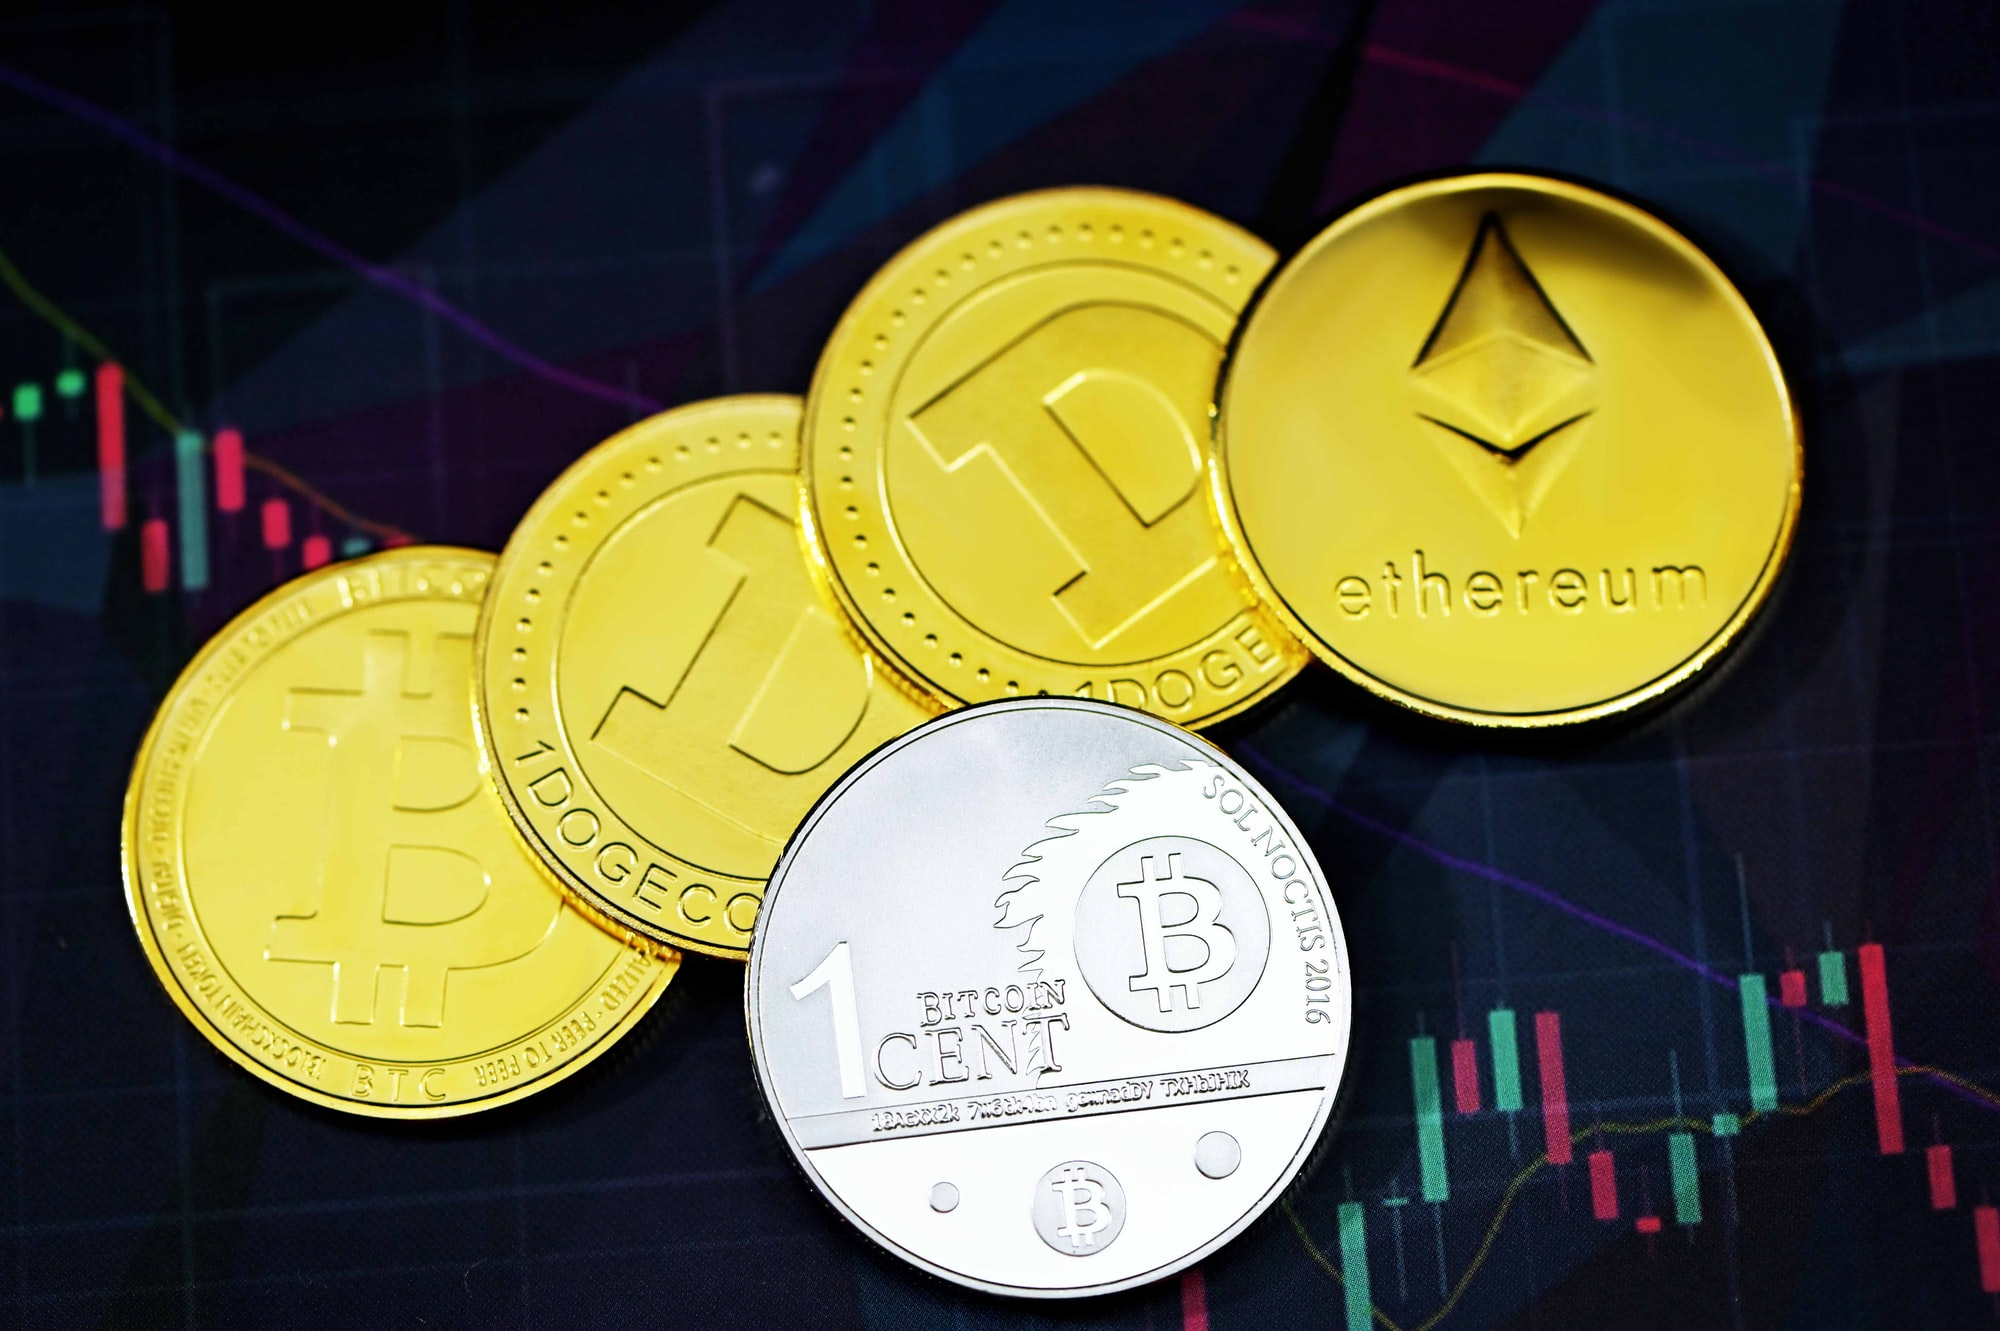 Diverse cryptocurrencies on top of trading chart